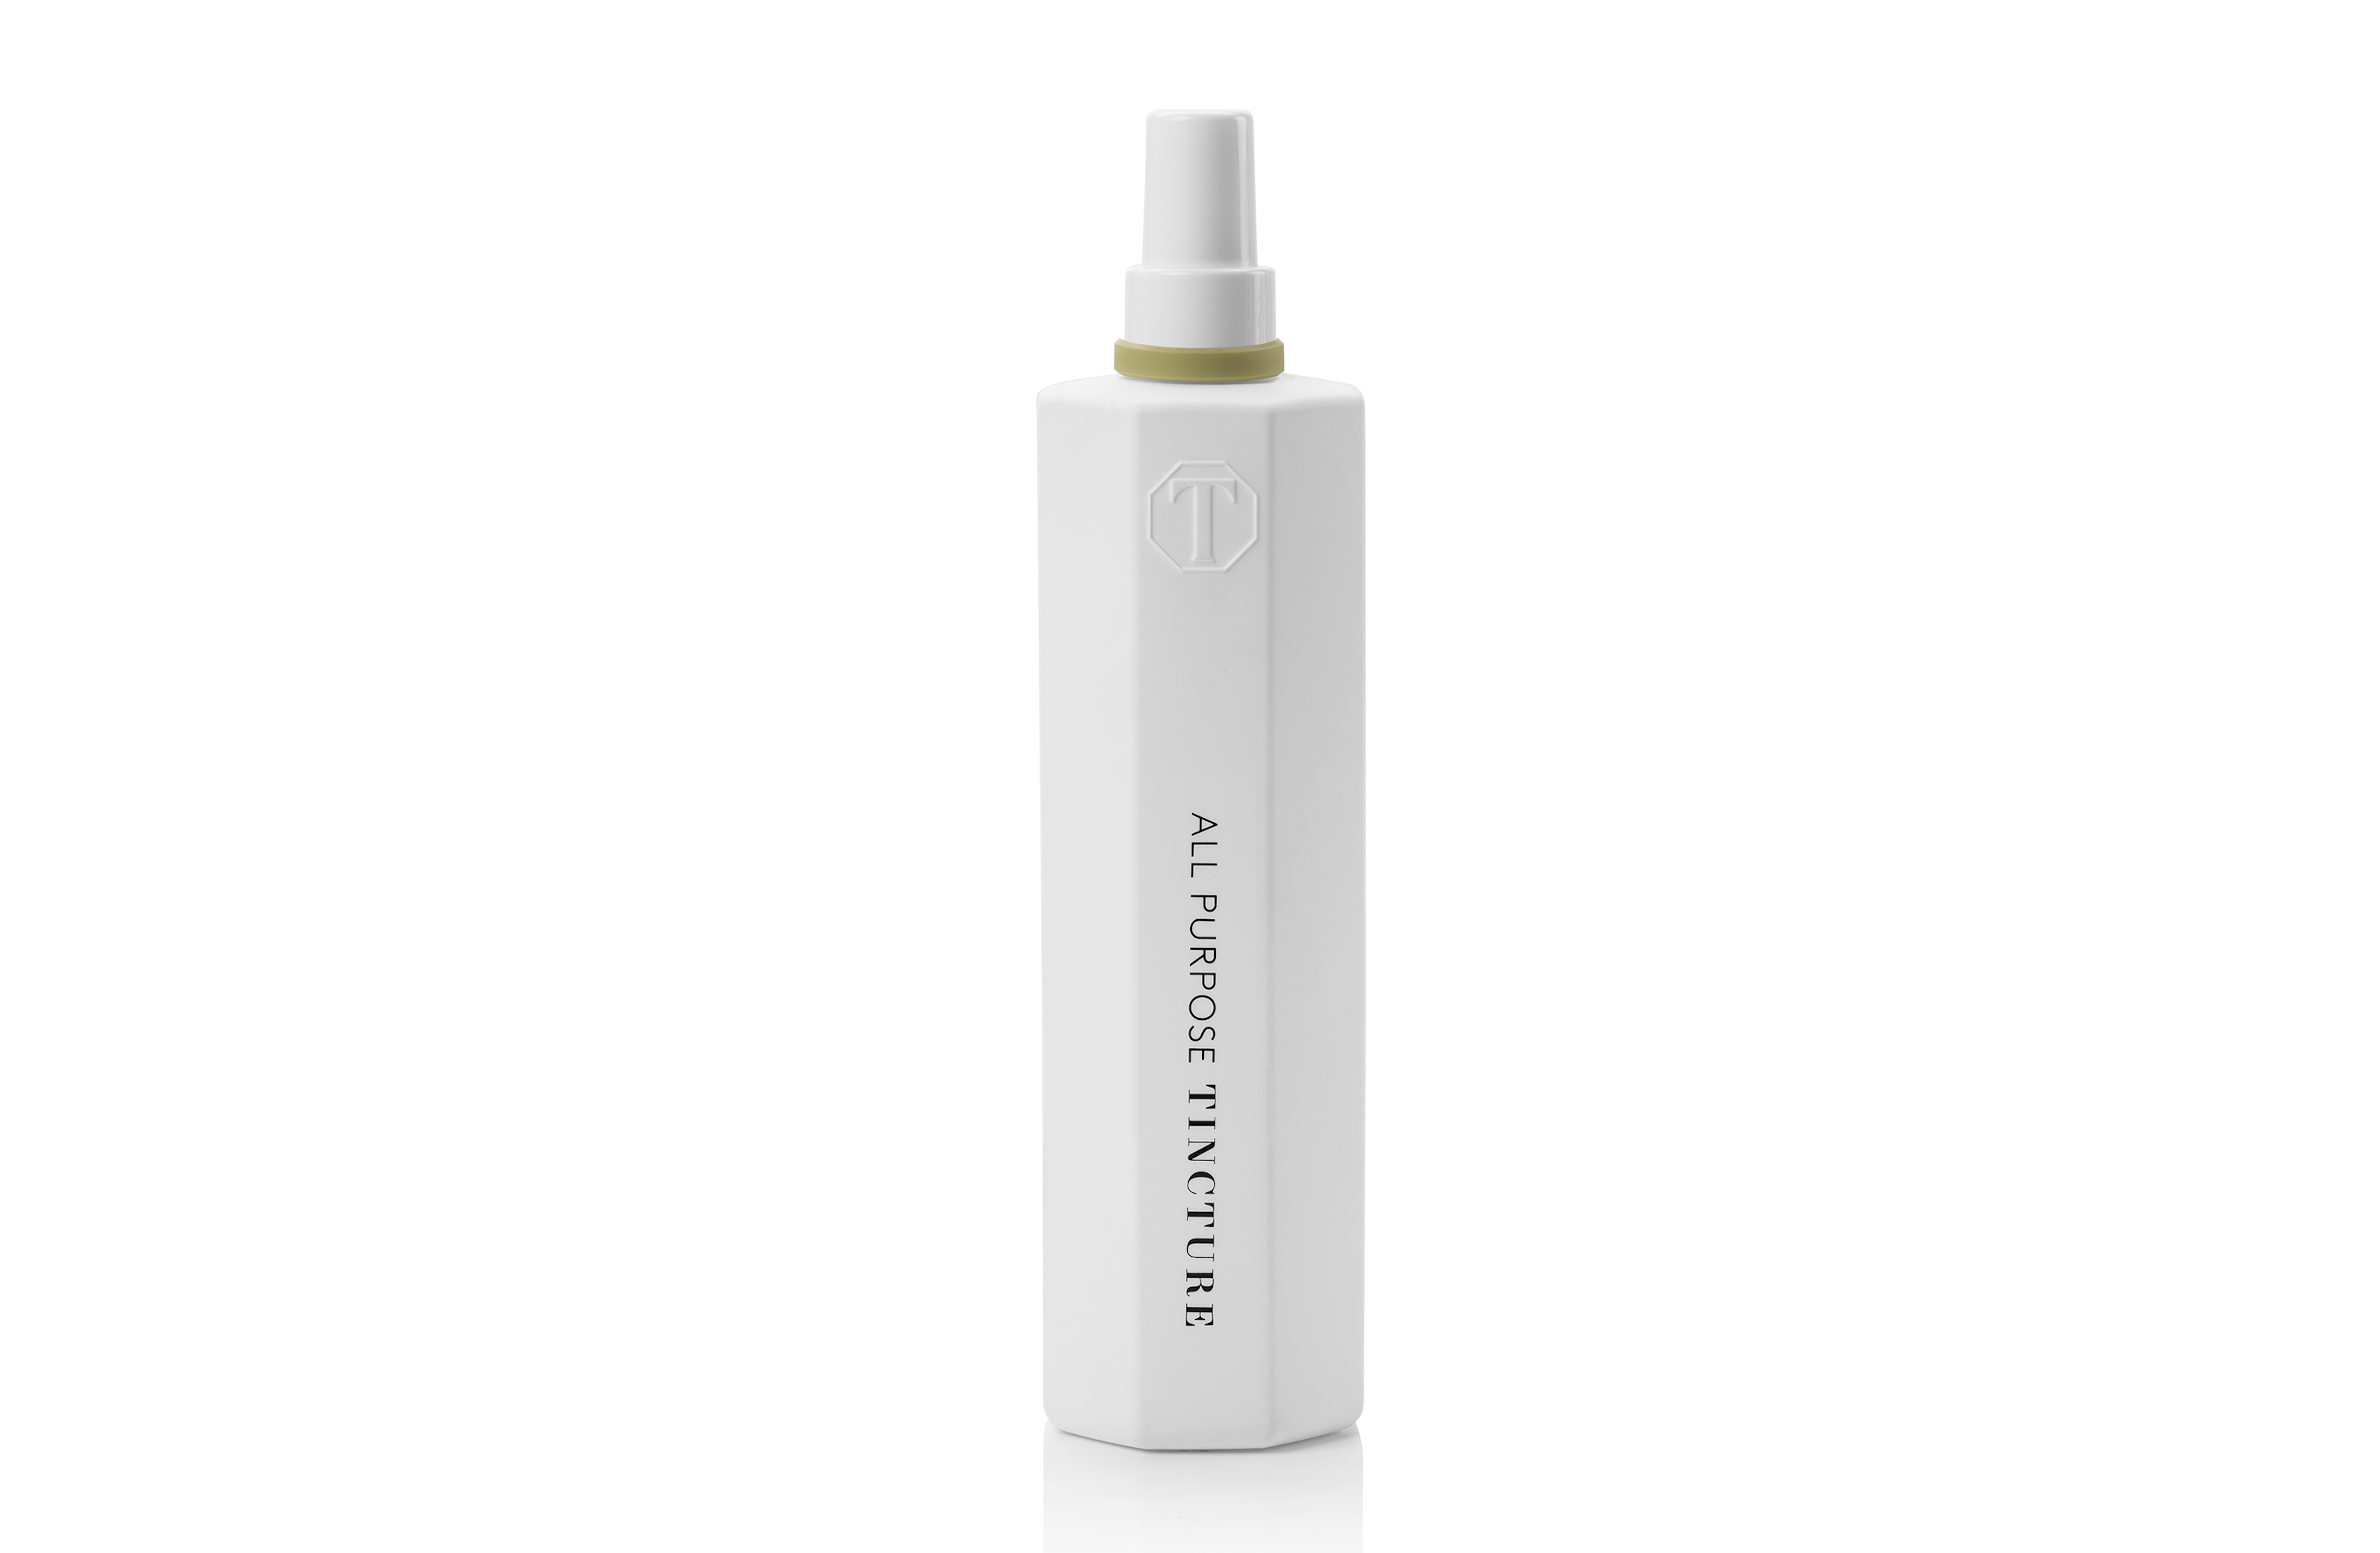 Tincture London All Purpose Cleaning Tincture